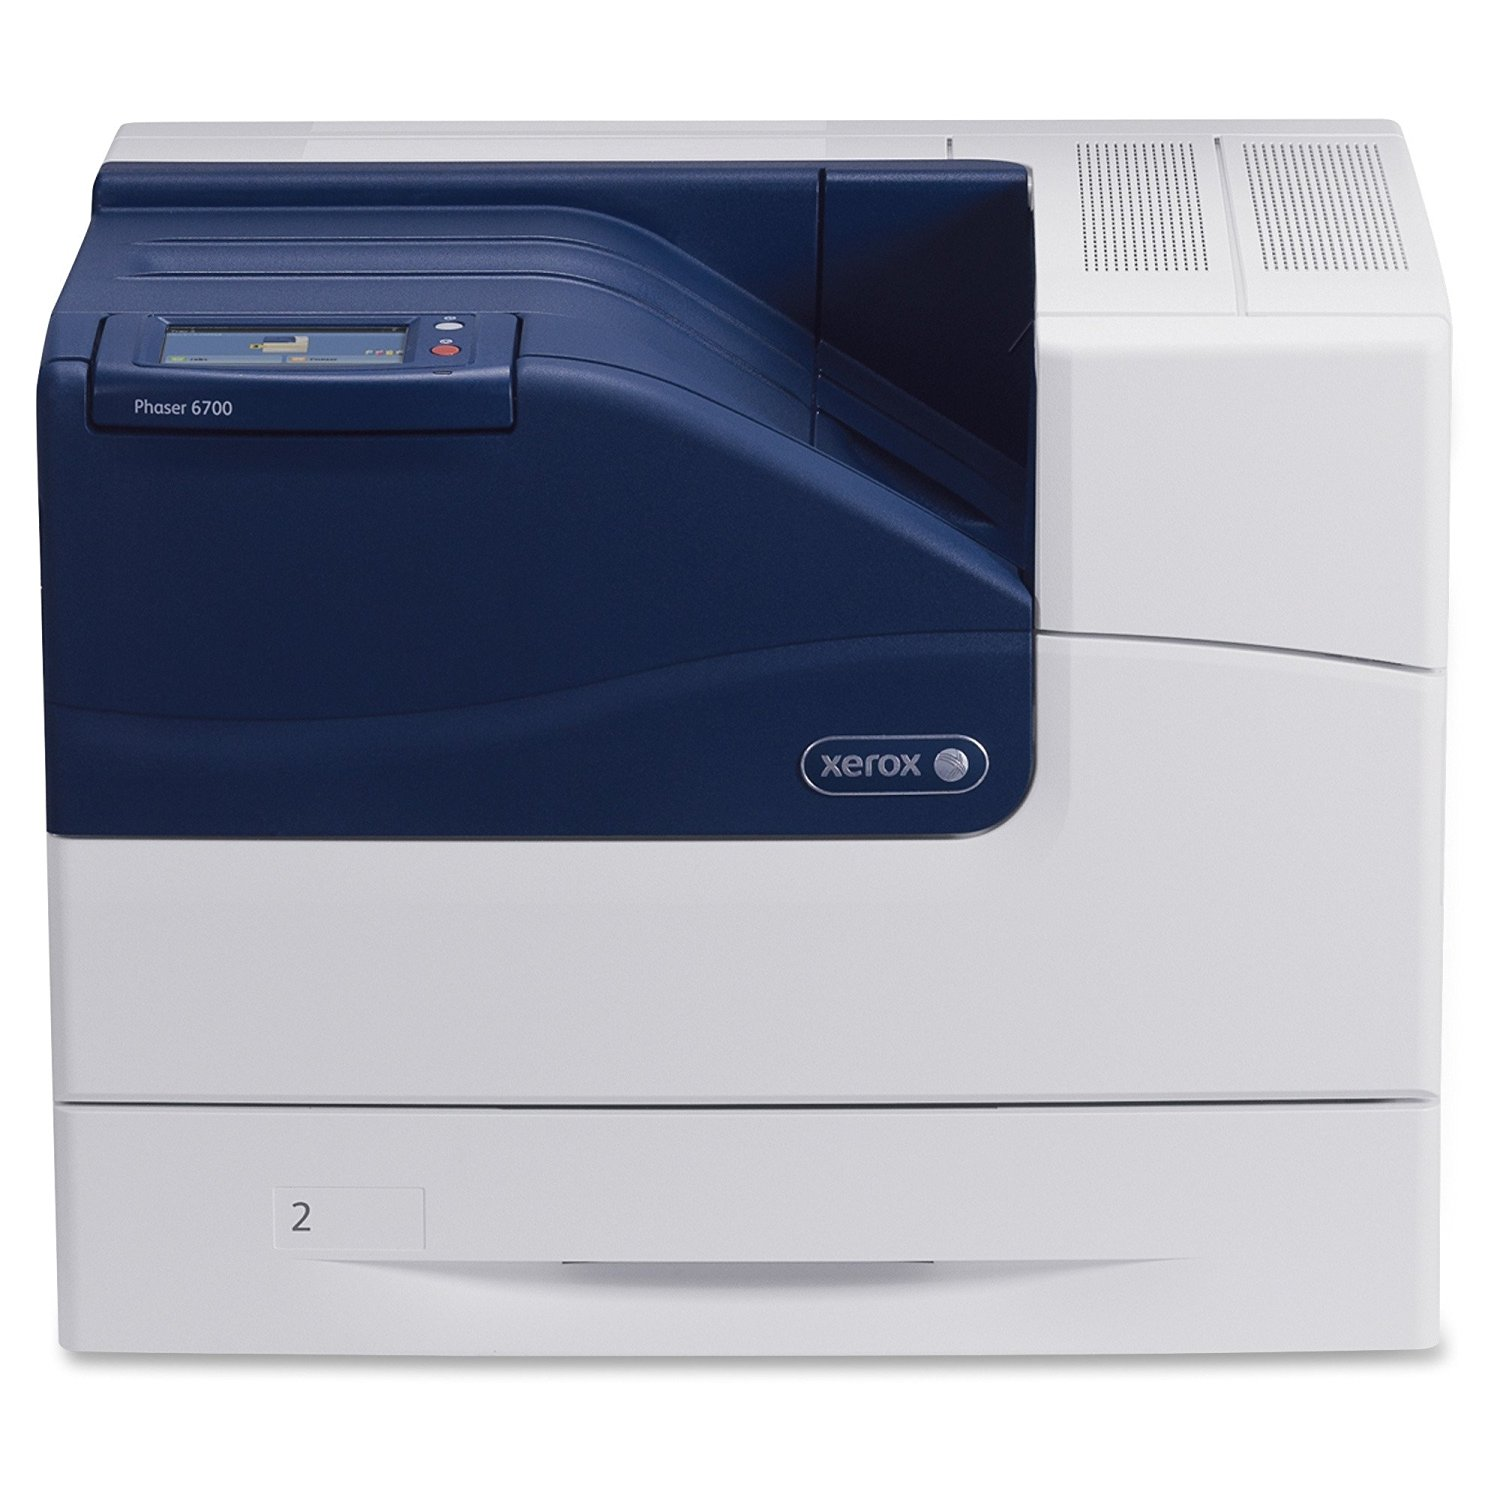 "Xerox Phaser 6700DN Color Laser Printer (47 ppm Mono/47 ppm Color) (1.25 GHz) (1 GB) (8.5"" x 14"") (2400 x 1200 dpi) (Duty Cycle 120,000 Pages) (Duplex) (700 Sheet Input Tray) (Network) (Ethernet) USB"